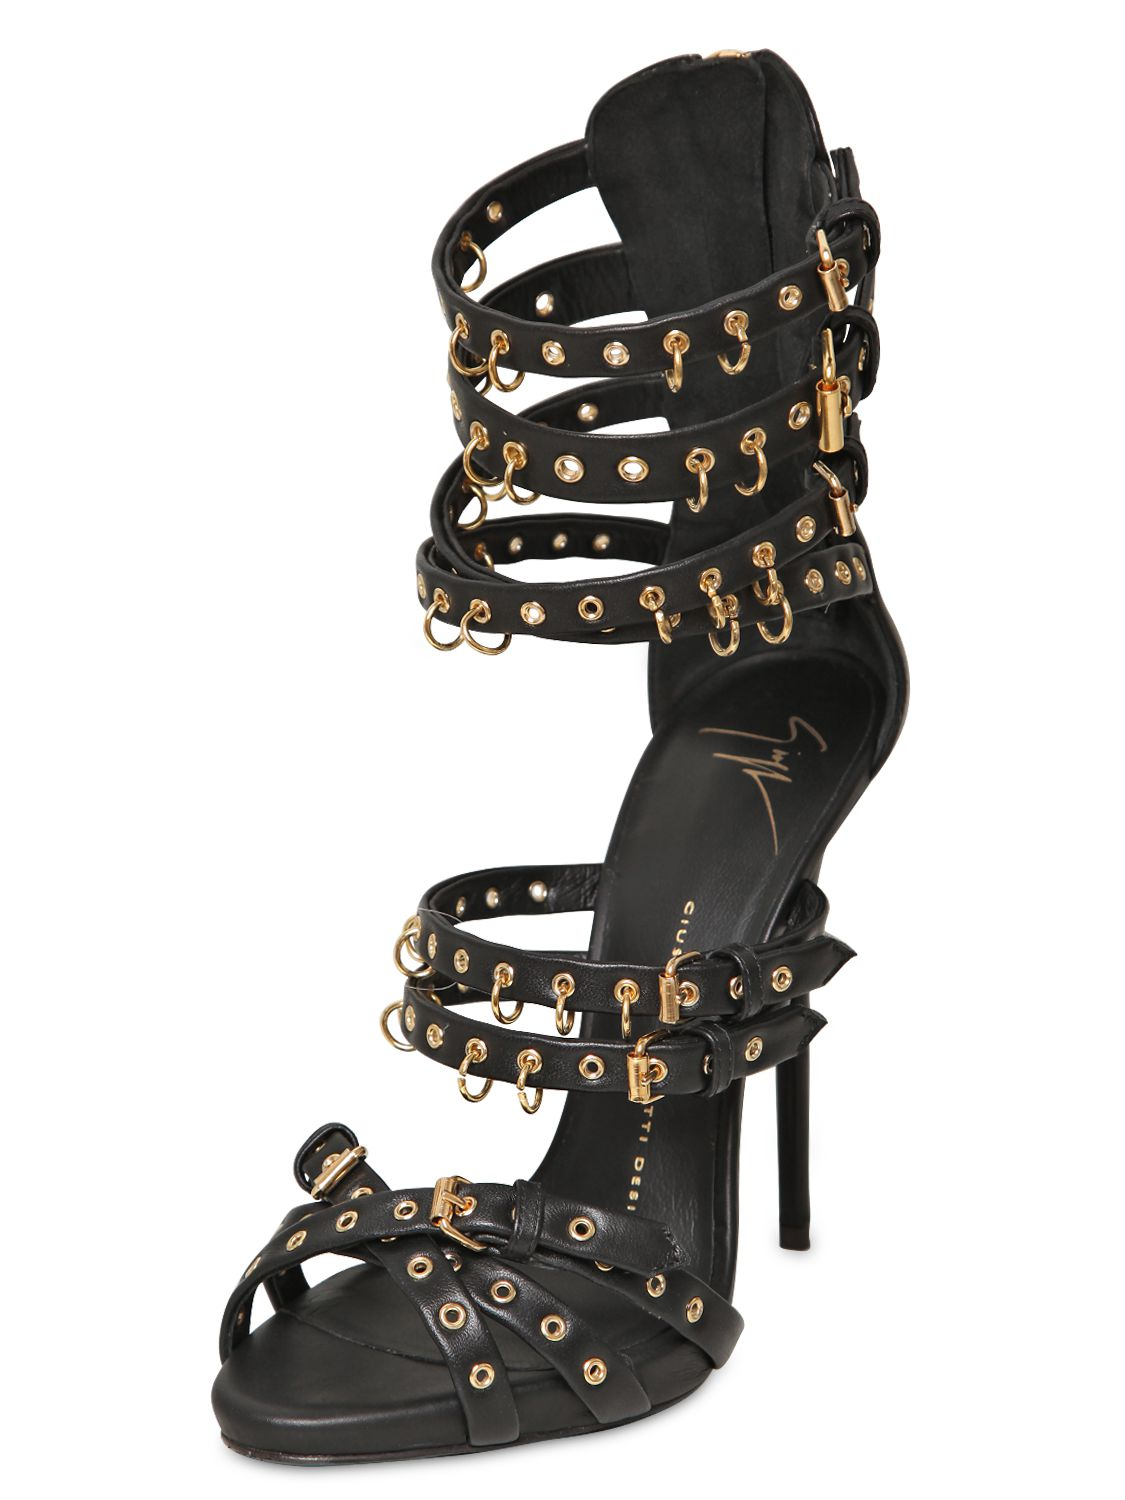 Lyst Giuseppe Zanotti 120mm Leather Piercing Cage